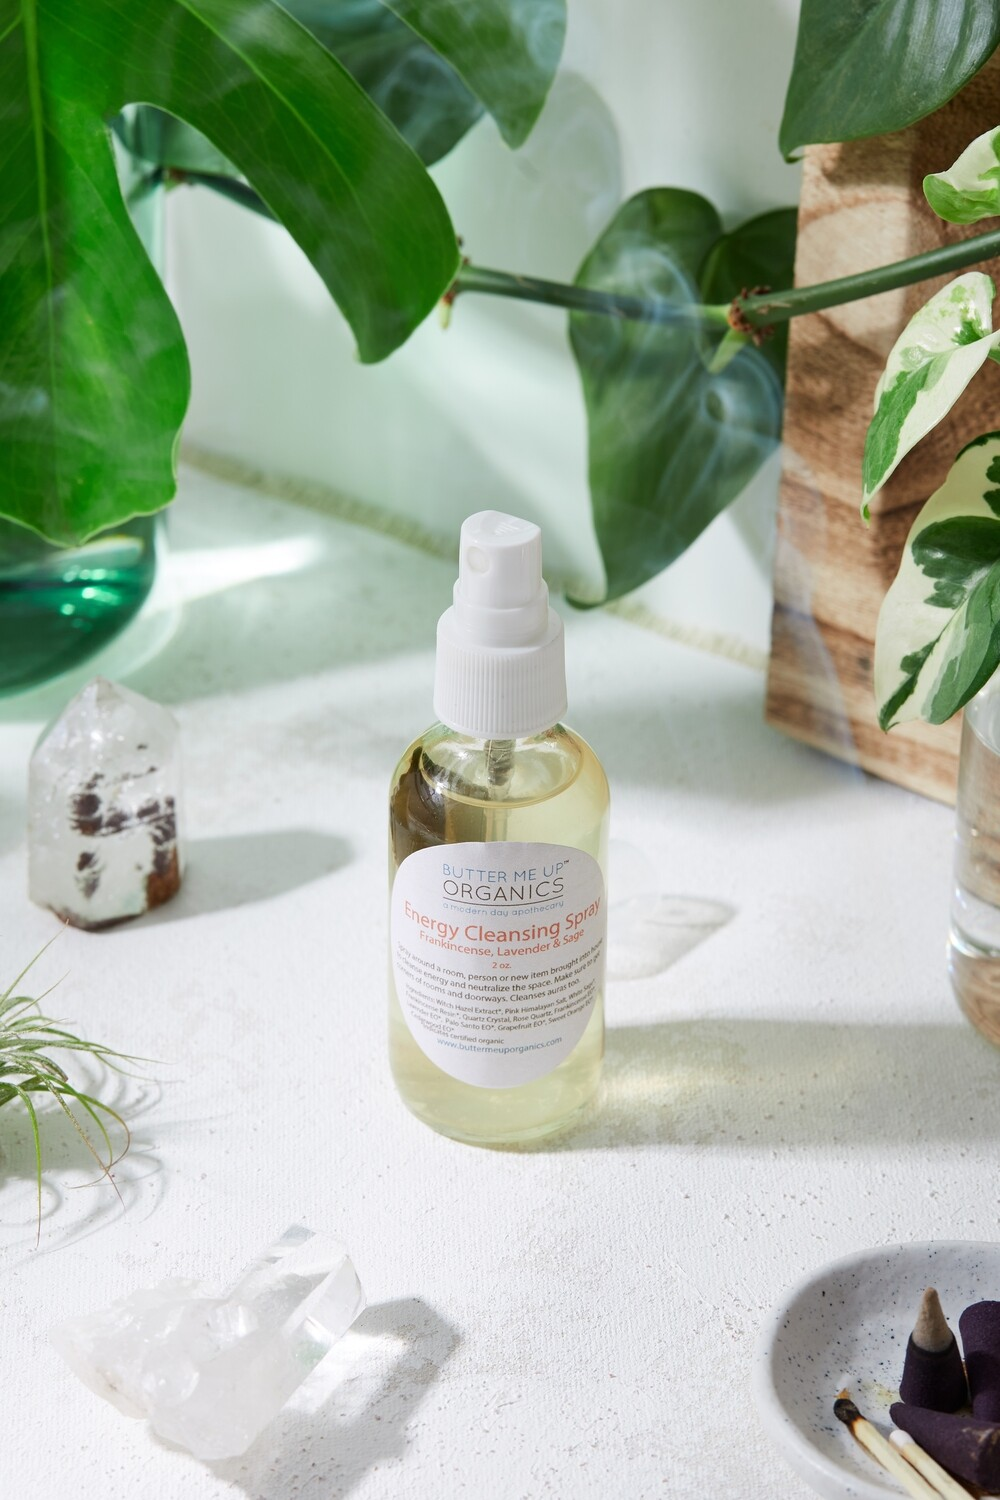 Organic Energy Cleansing Spray / Smudge Spray / Space Clearing /